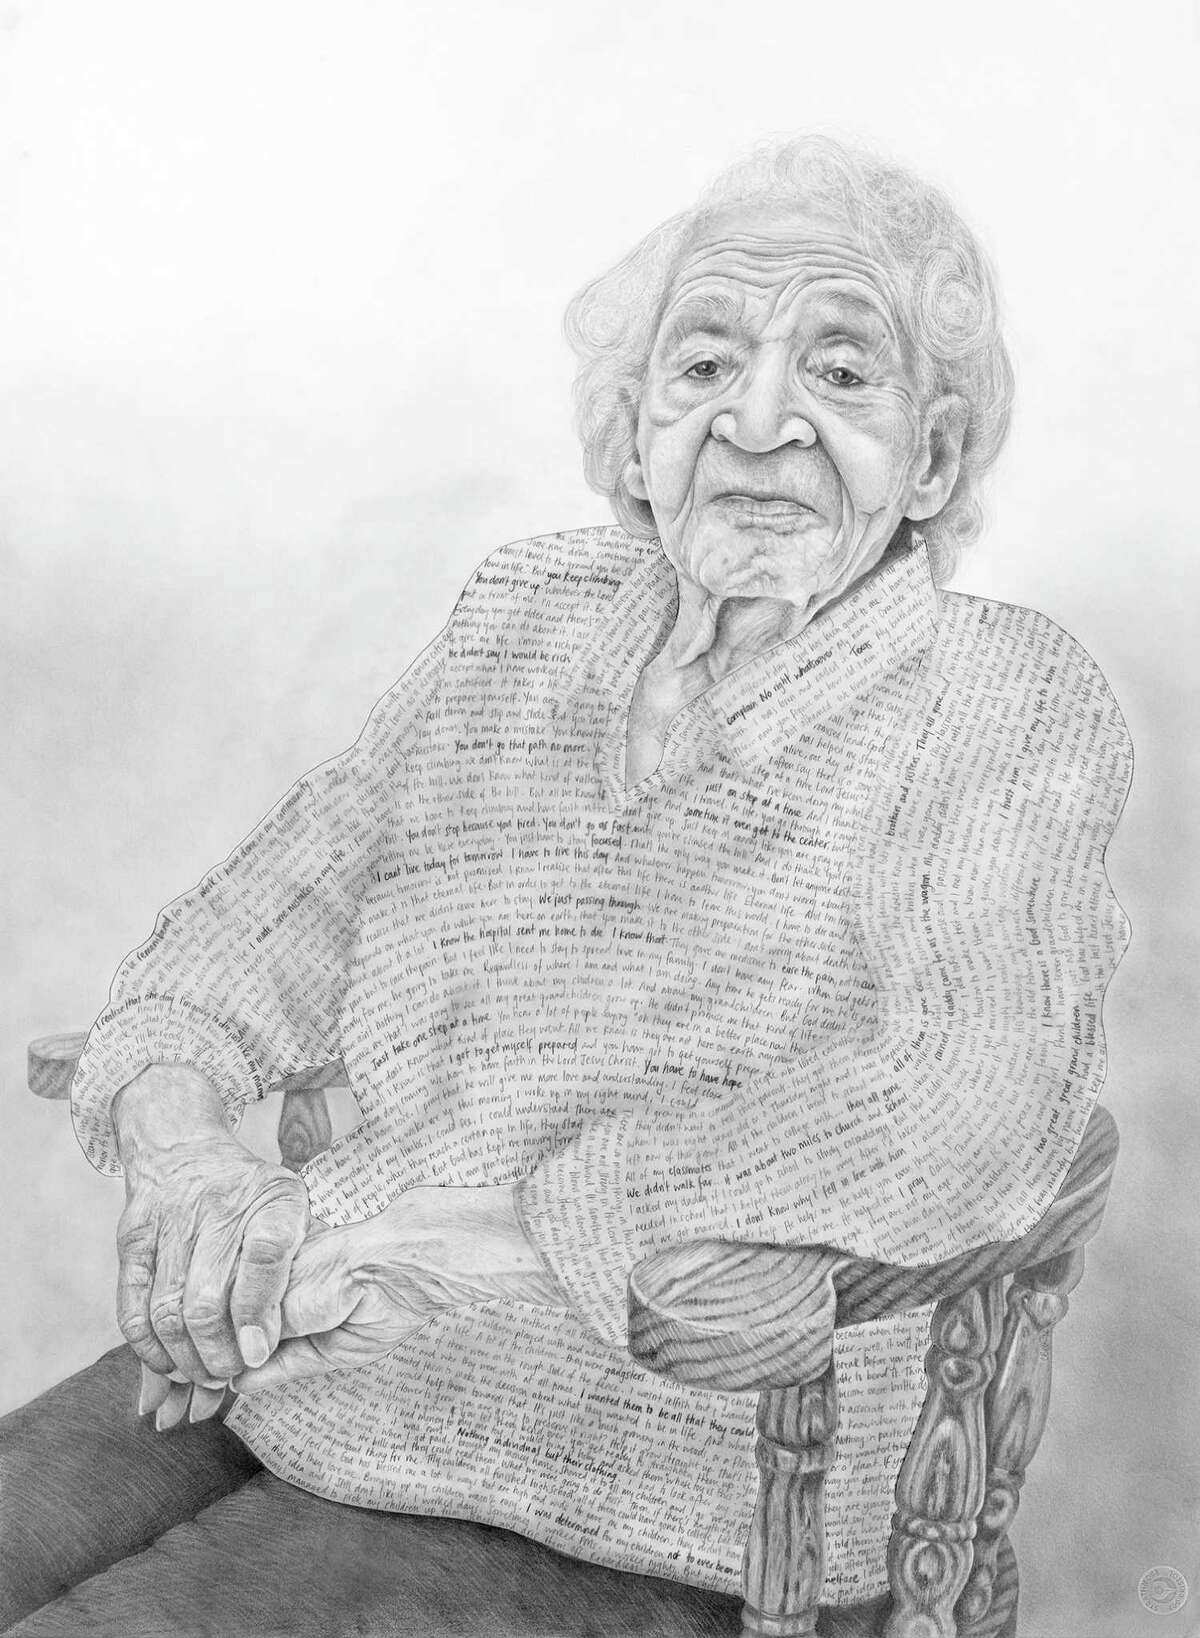 Ora is a portrait in a series made by Claudia Biçen during interviews and audio recordings of nine hospice patients.